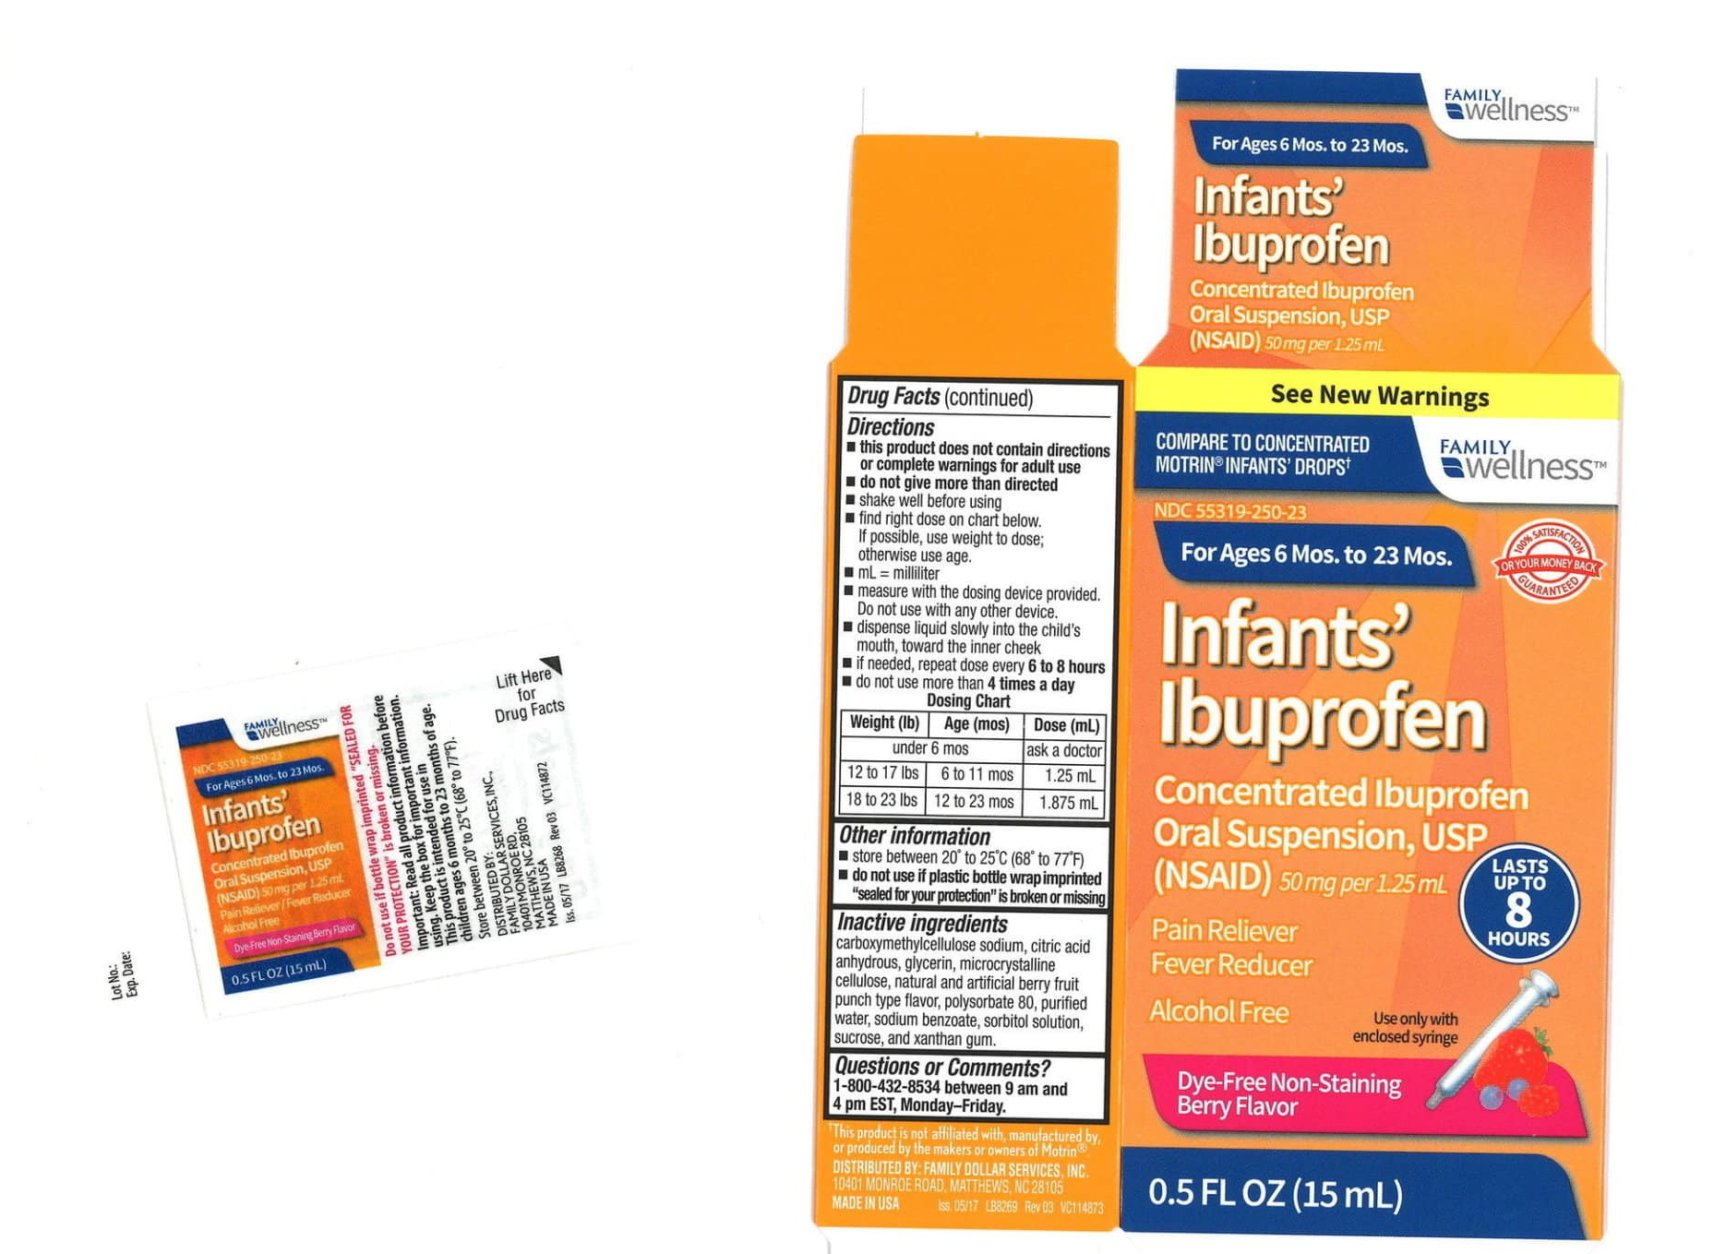 An example of the recalled liquid ibuprofen packaging found at Family Dollar. (Tris Pharma, Inc./Hand-out)